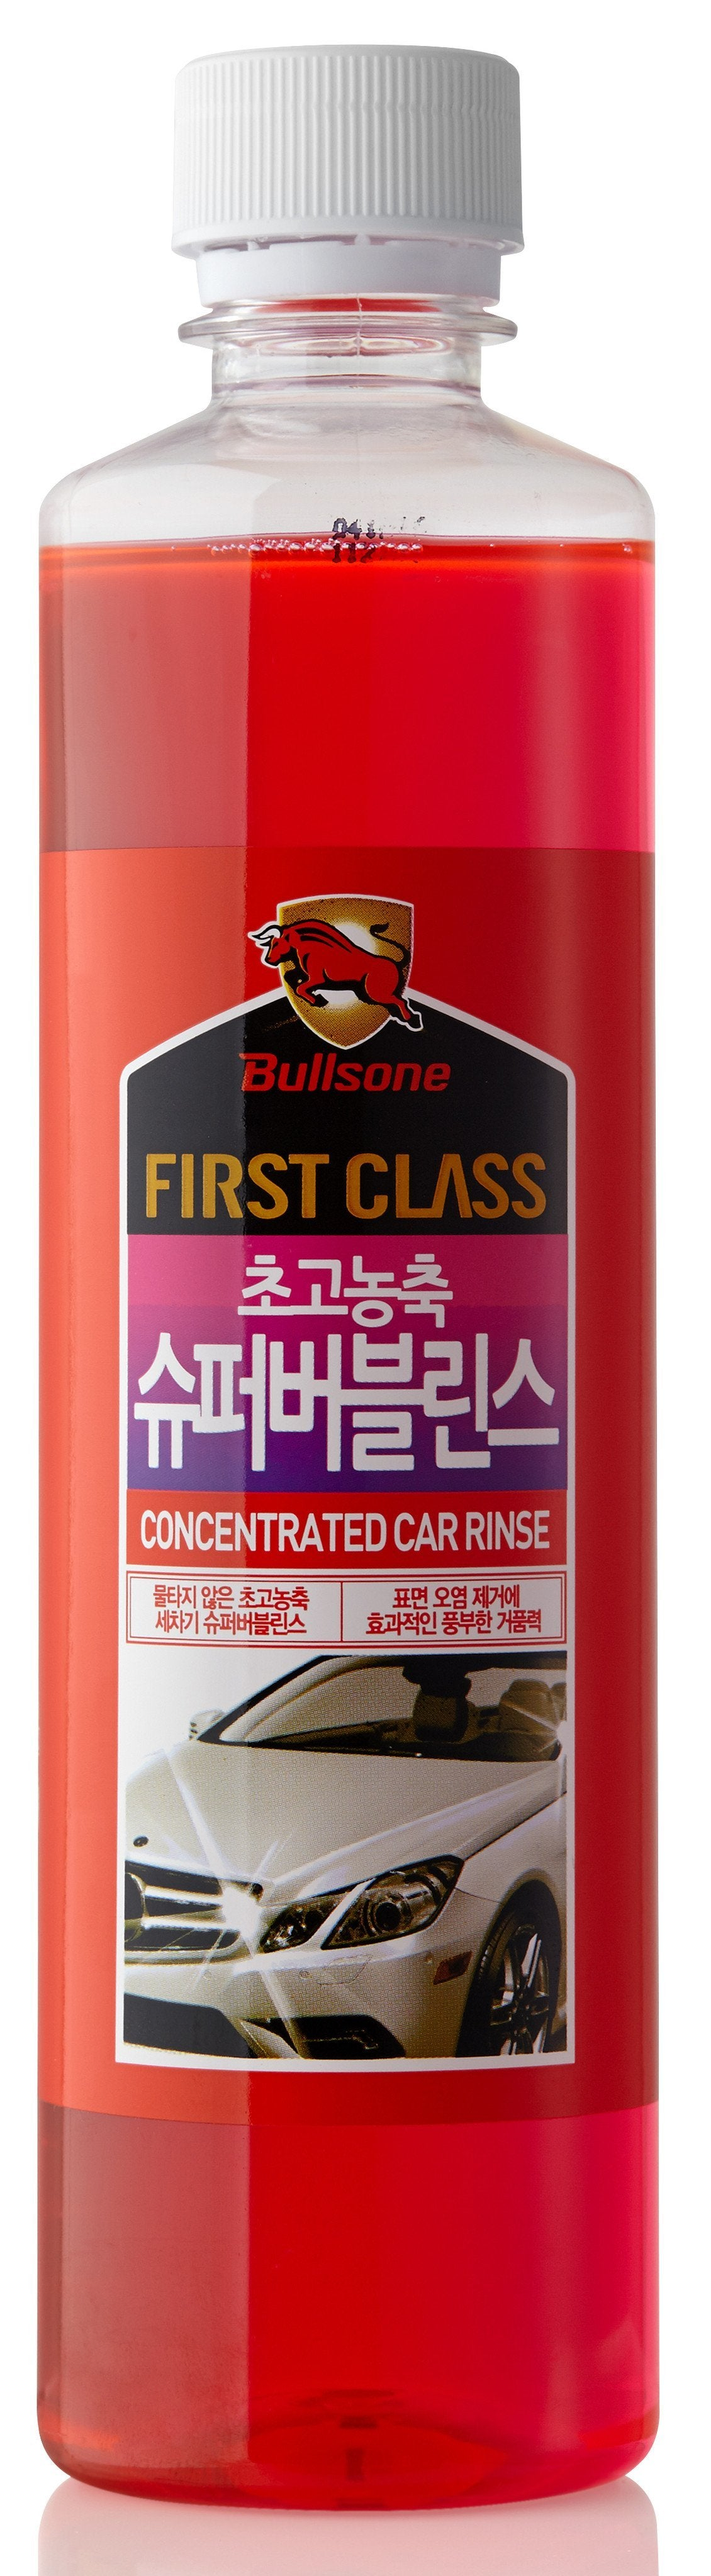 https://cdn.shopify.com/s/files/1/0723/4723/products/First_Class_High_Concentrated_for_Car_Washing_Shop_-_Super_Bubble_Rinse_500ml_16.91oz.jpg?v=1501221367